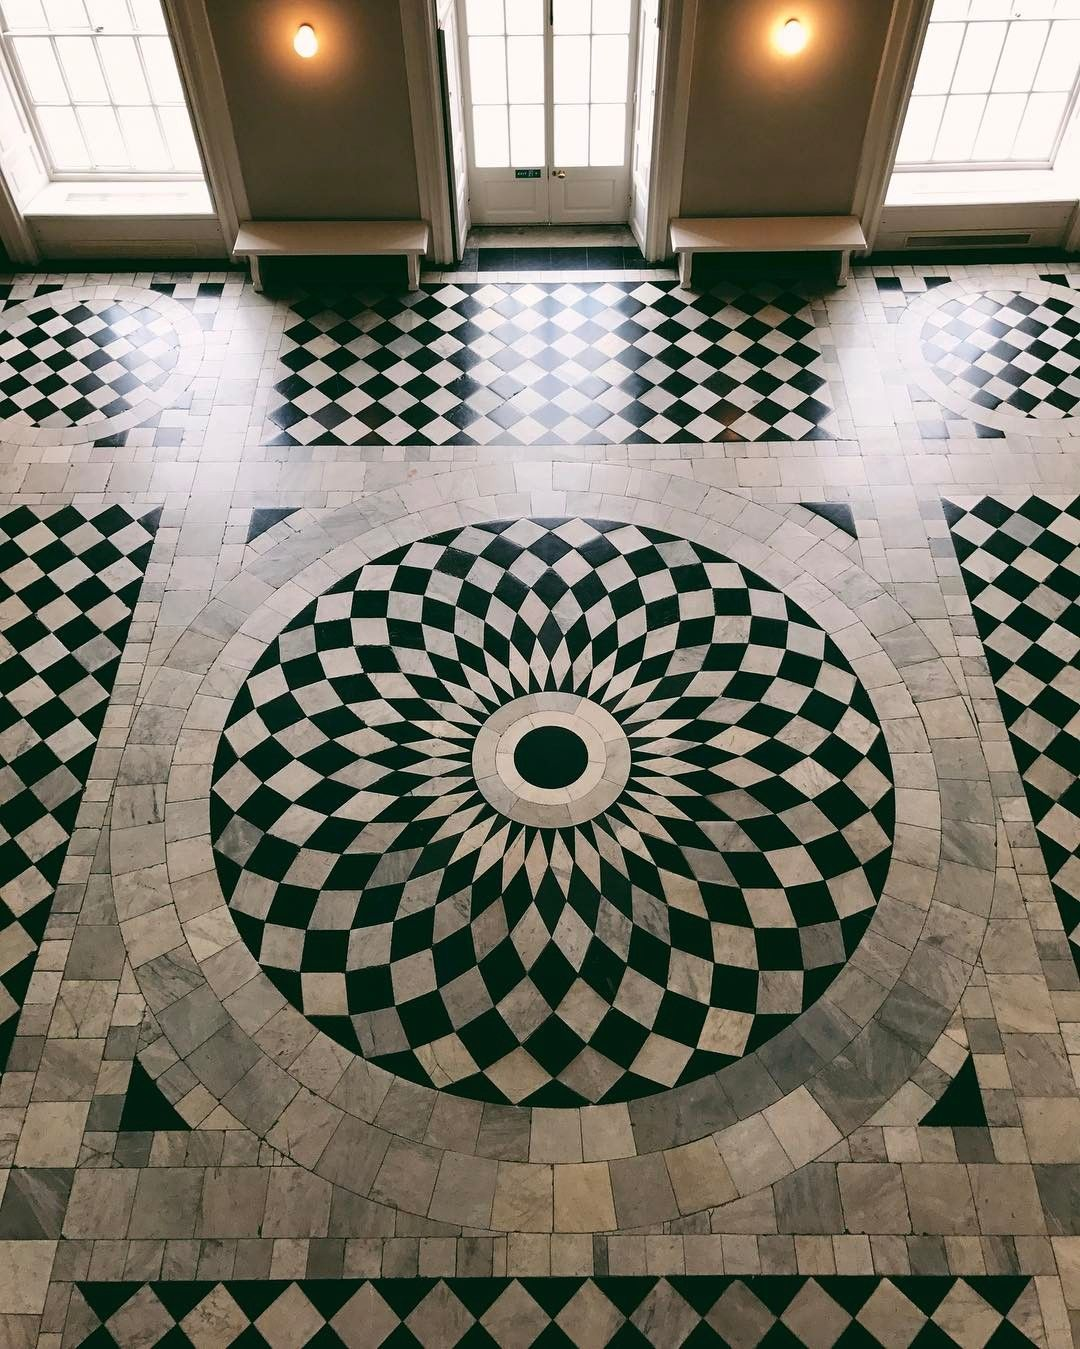 Mesmerizing marble floors at the Queens House in Greenwich